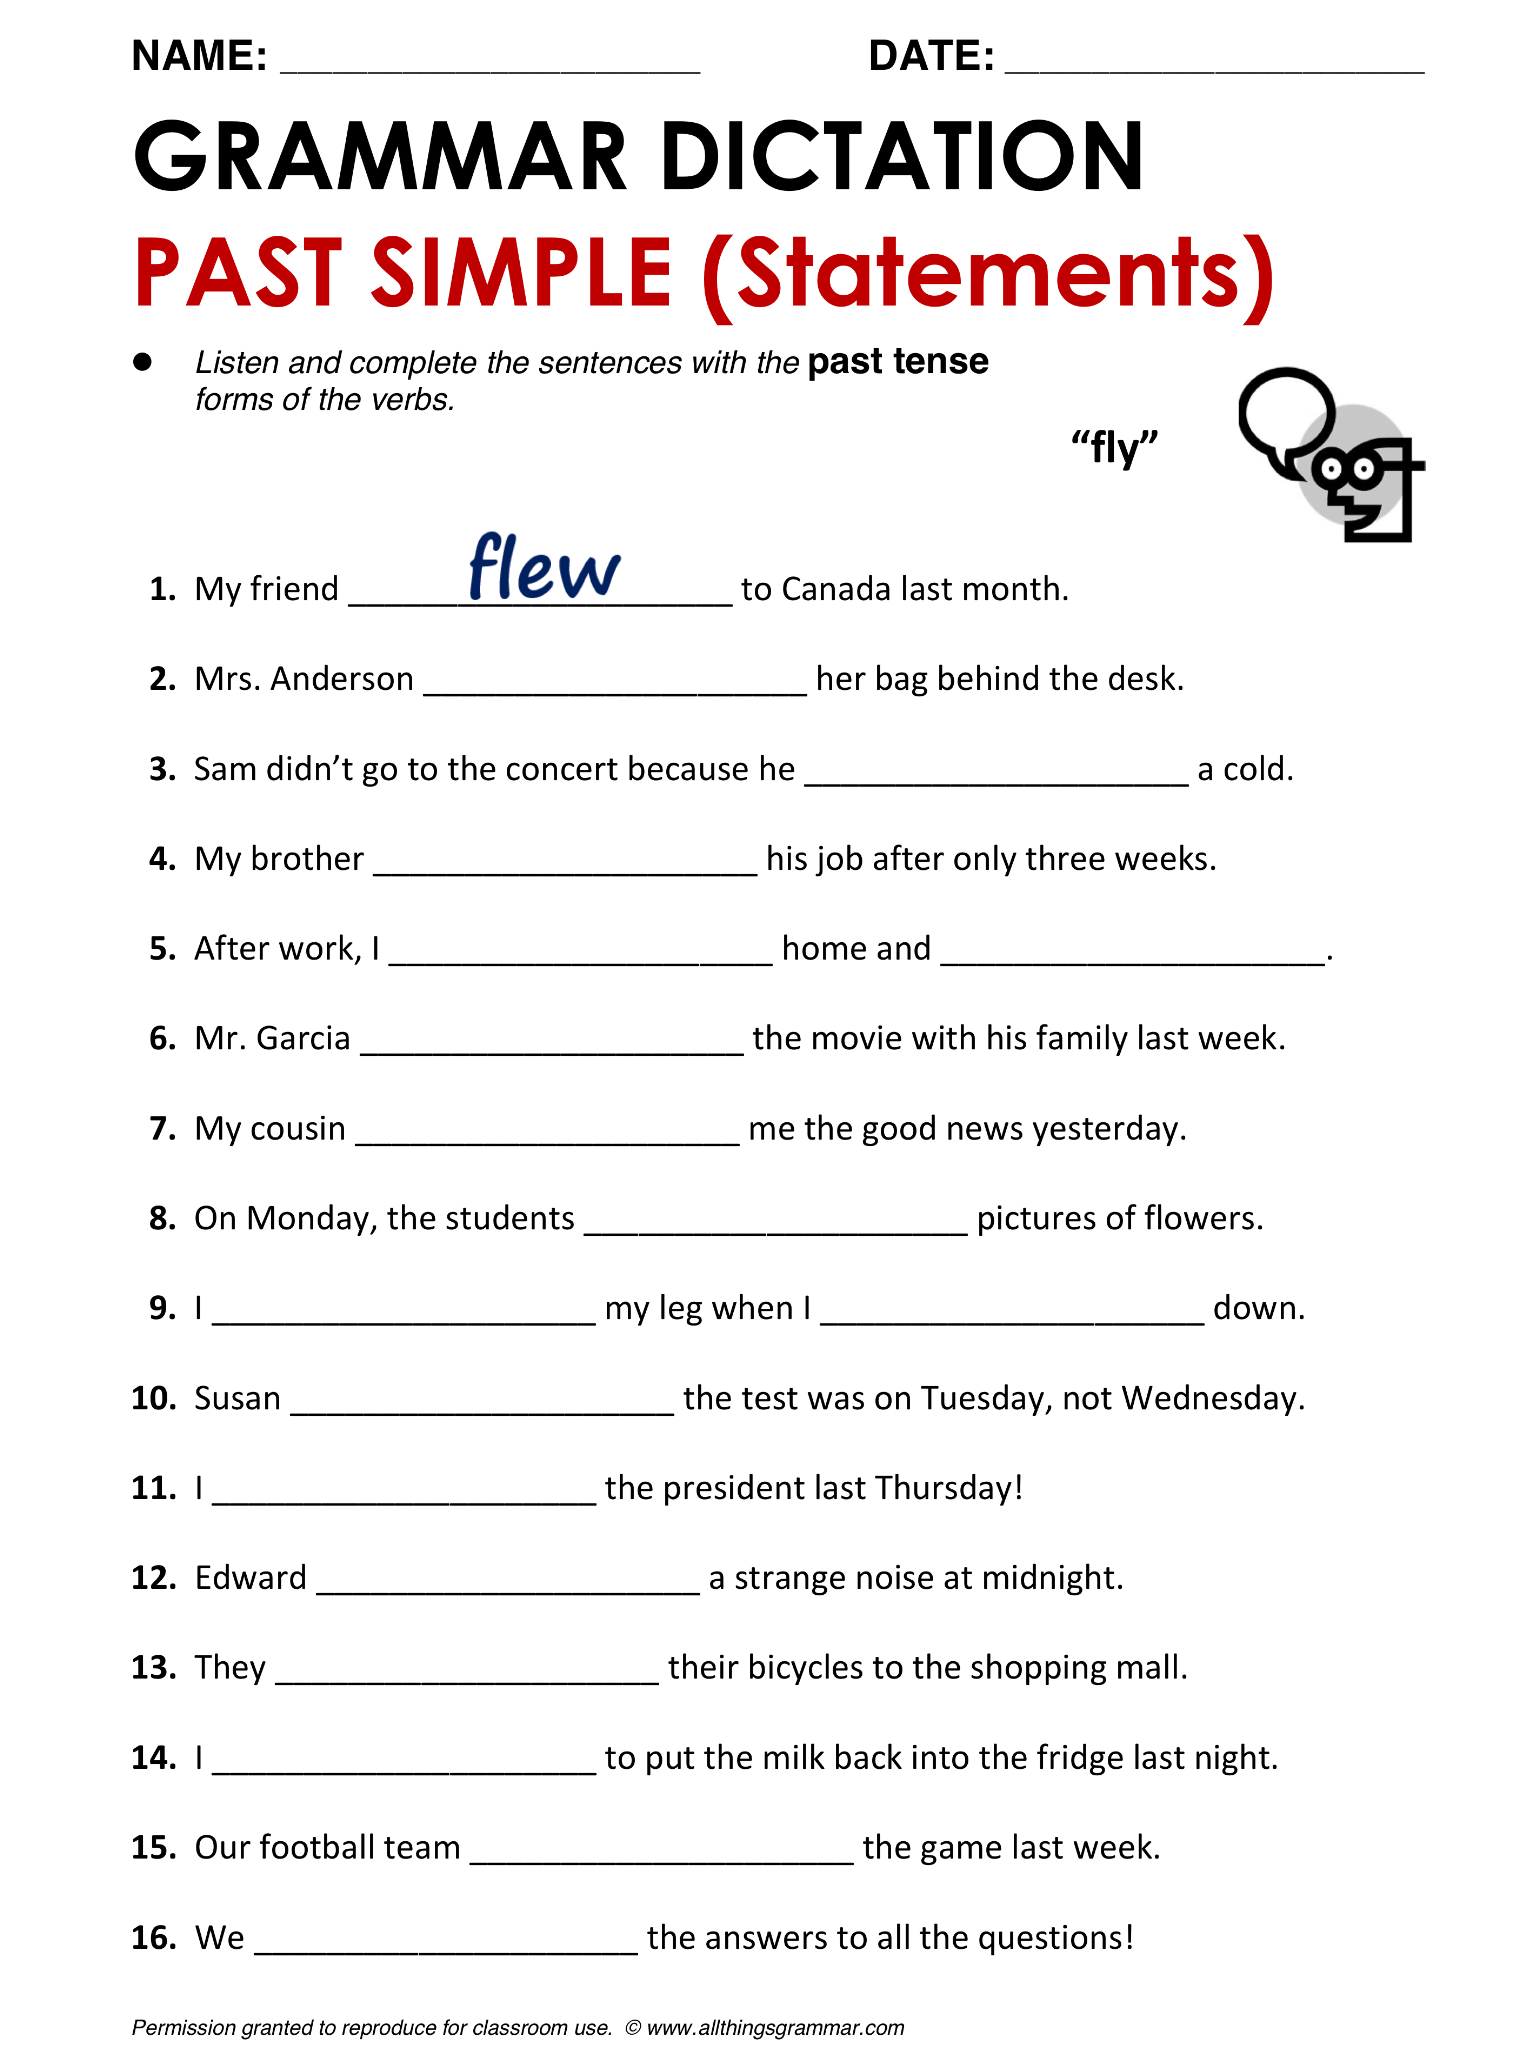 English Grammar Past Simple allthingsgrammarpastsimple – Basic Grammar Worksheets